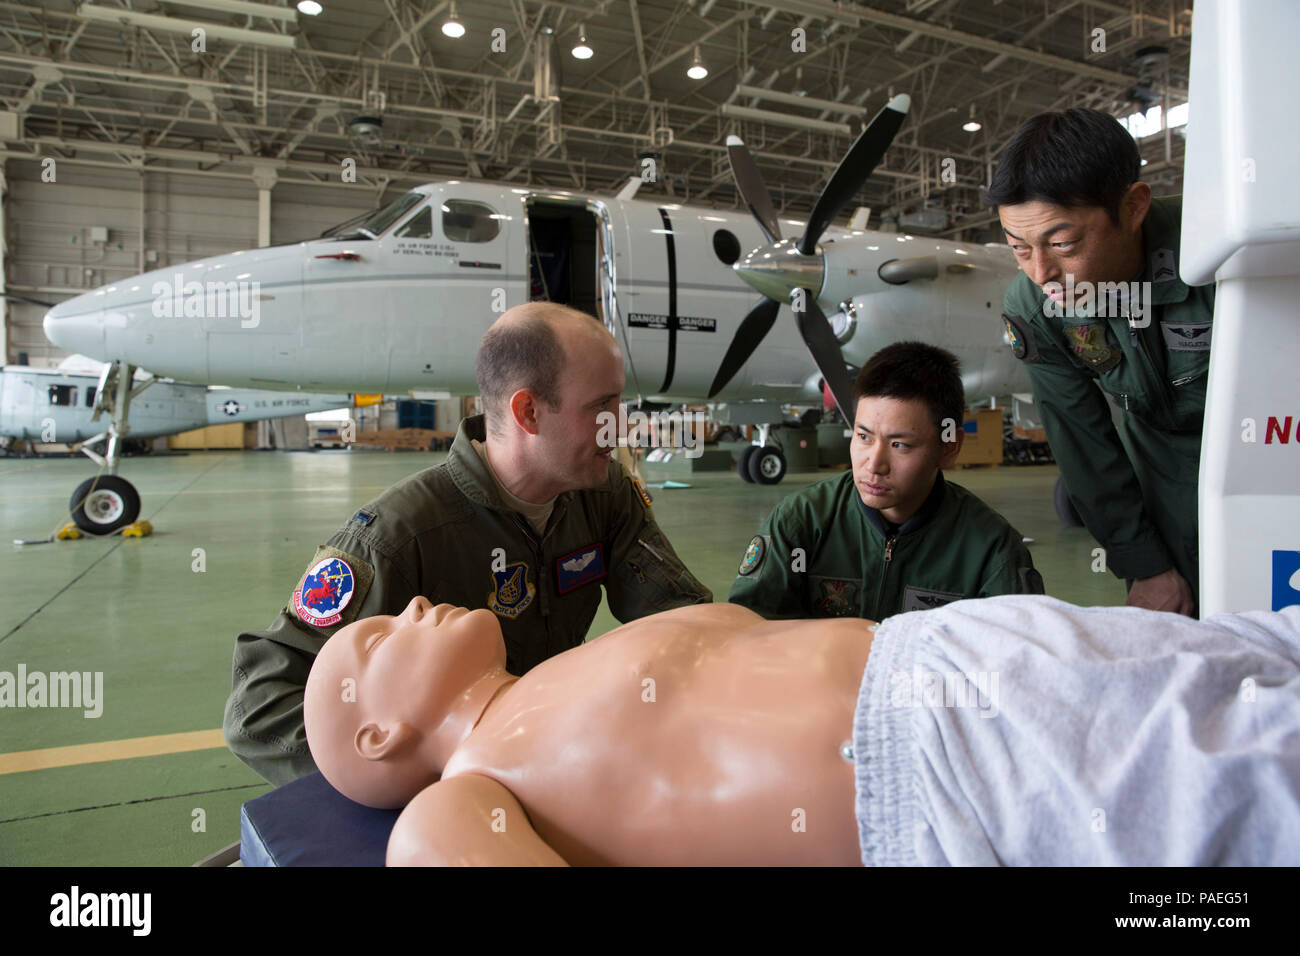 (Left to right) U.S. Air Force 1st Lt. Anthony Pergola, 459th Airlift Squadron C-12 pilot, talks about an Aeromedical Evacuation Spectrum Bed to Japan Air Self-Defense Capt. Daiki Ishihara, 402nd Squadron C-1 pilot, and JASDF Tech. Sgt. Shoji Nagata, 402nd Squadron C-1, U-4 loadmaster, at Yokota Air Base, Japan, March 30, 2016. 459 AS members demonstrated Aeromedical Evacuation procedures of a C-12 Huron to JASDF members to improve the working relationship between JASDF and USAF. (U.S. Air Force photo by Yasuo Osakabe/Released) Stock Photo